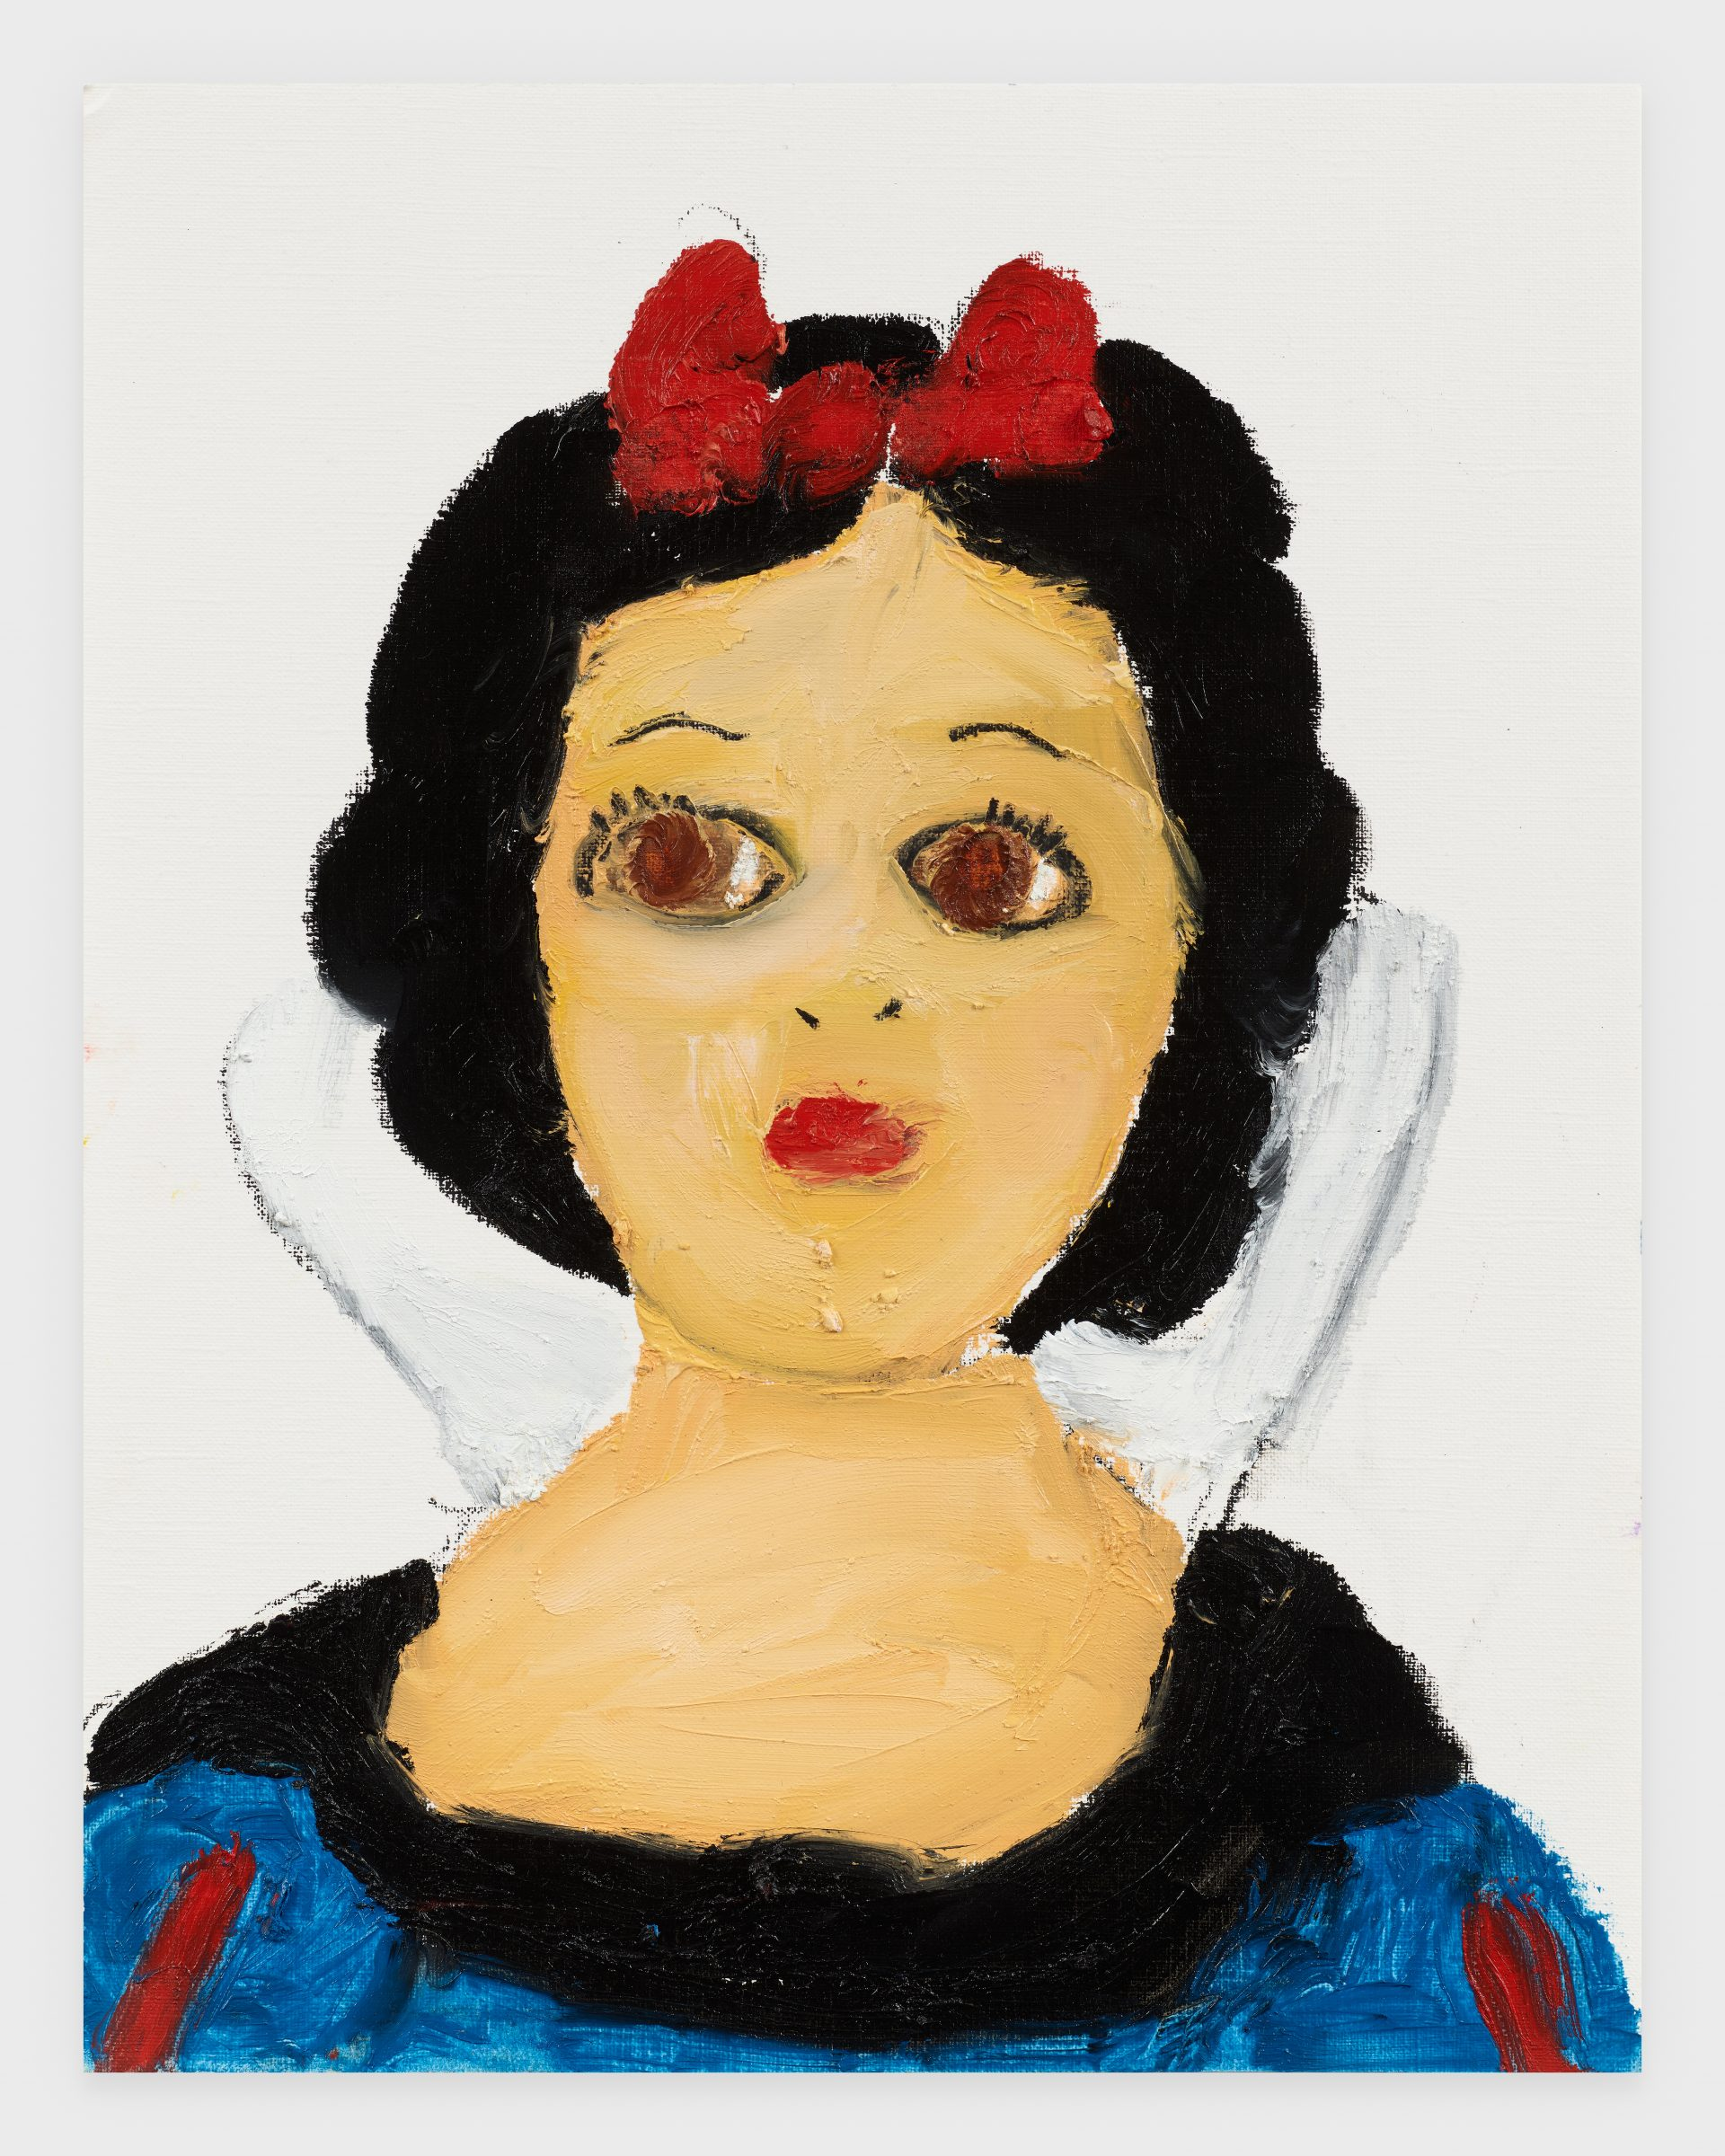 Snow White, 2020, Oil stick on archival paper, 11 x 14 inches